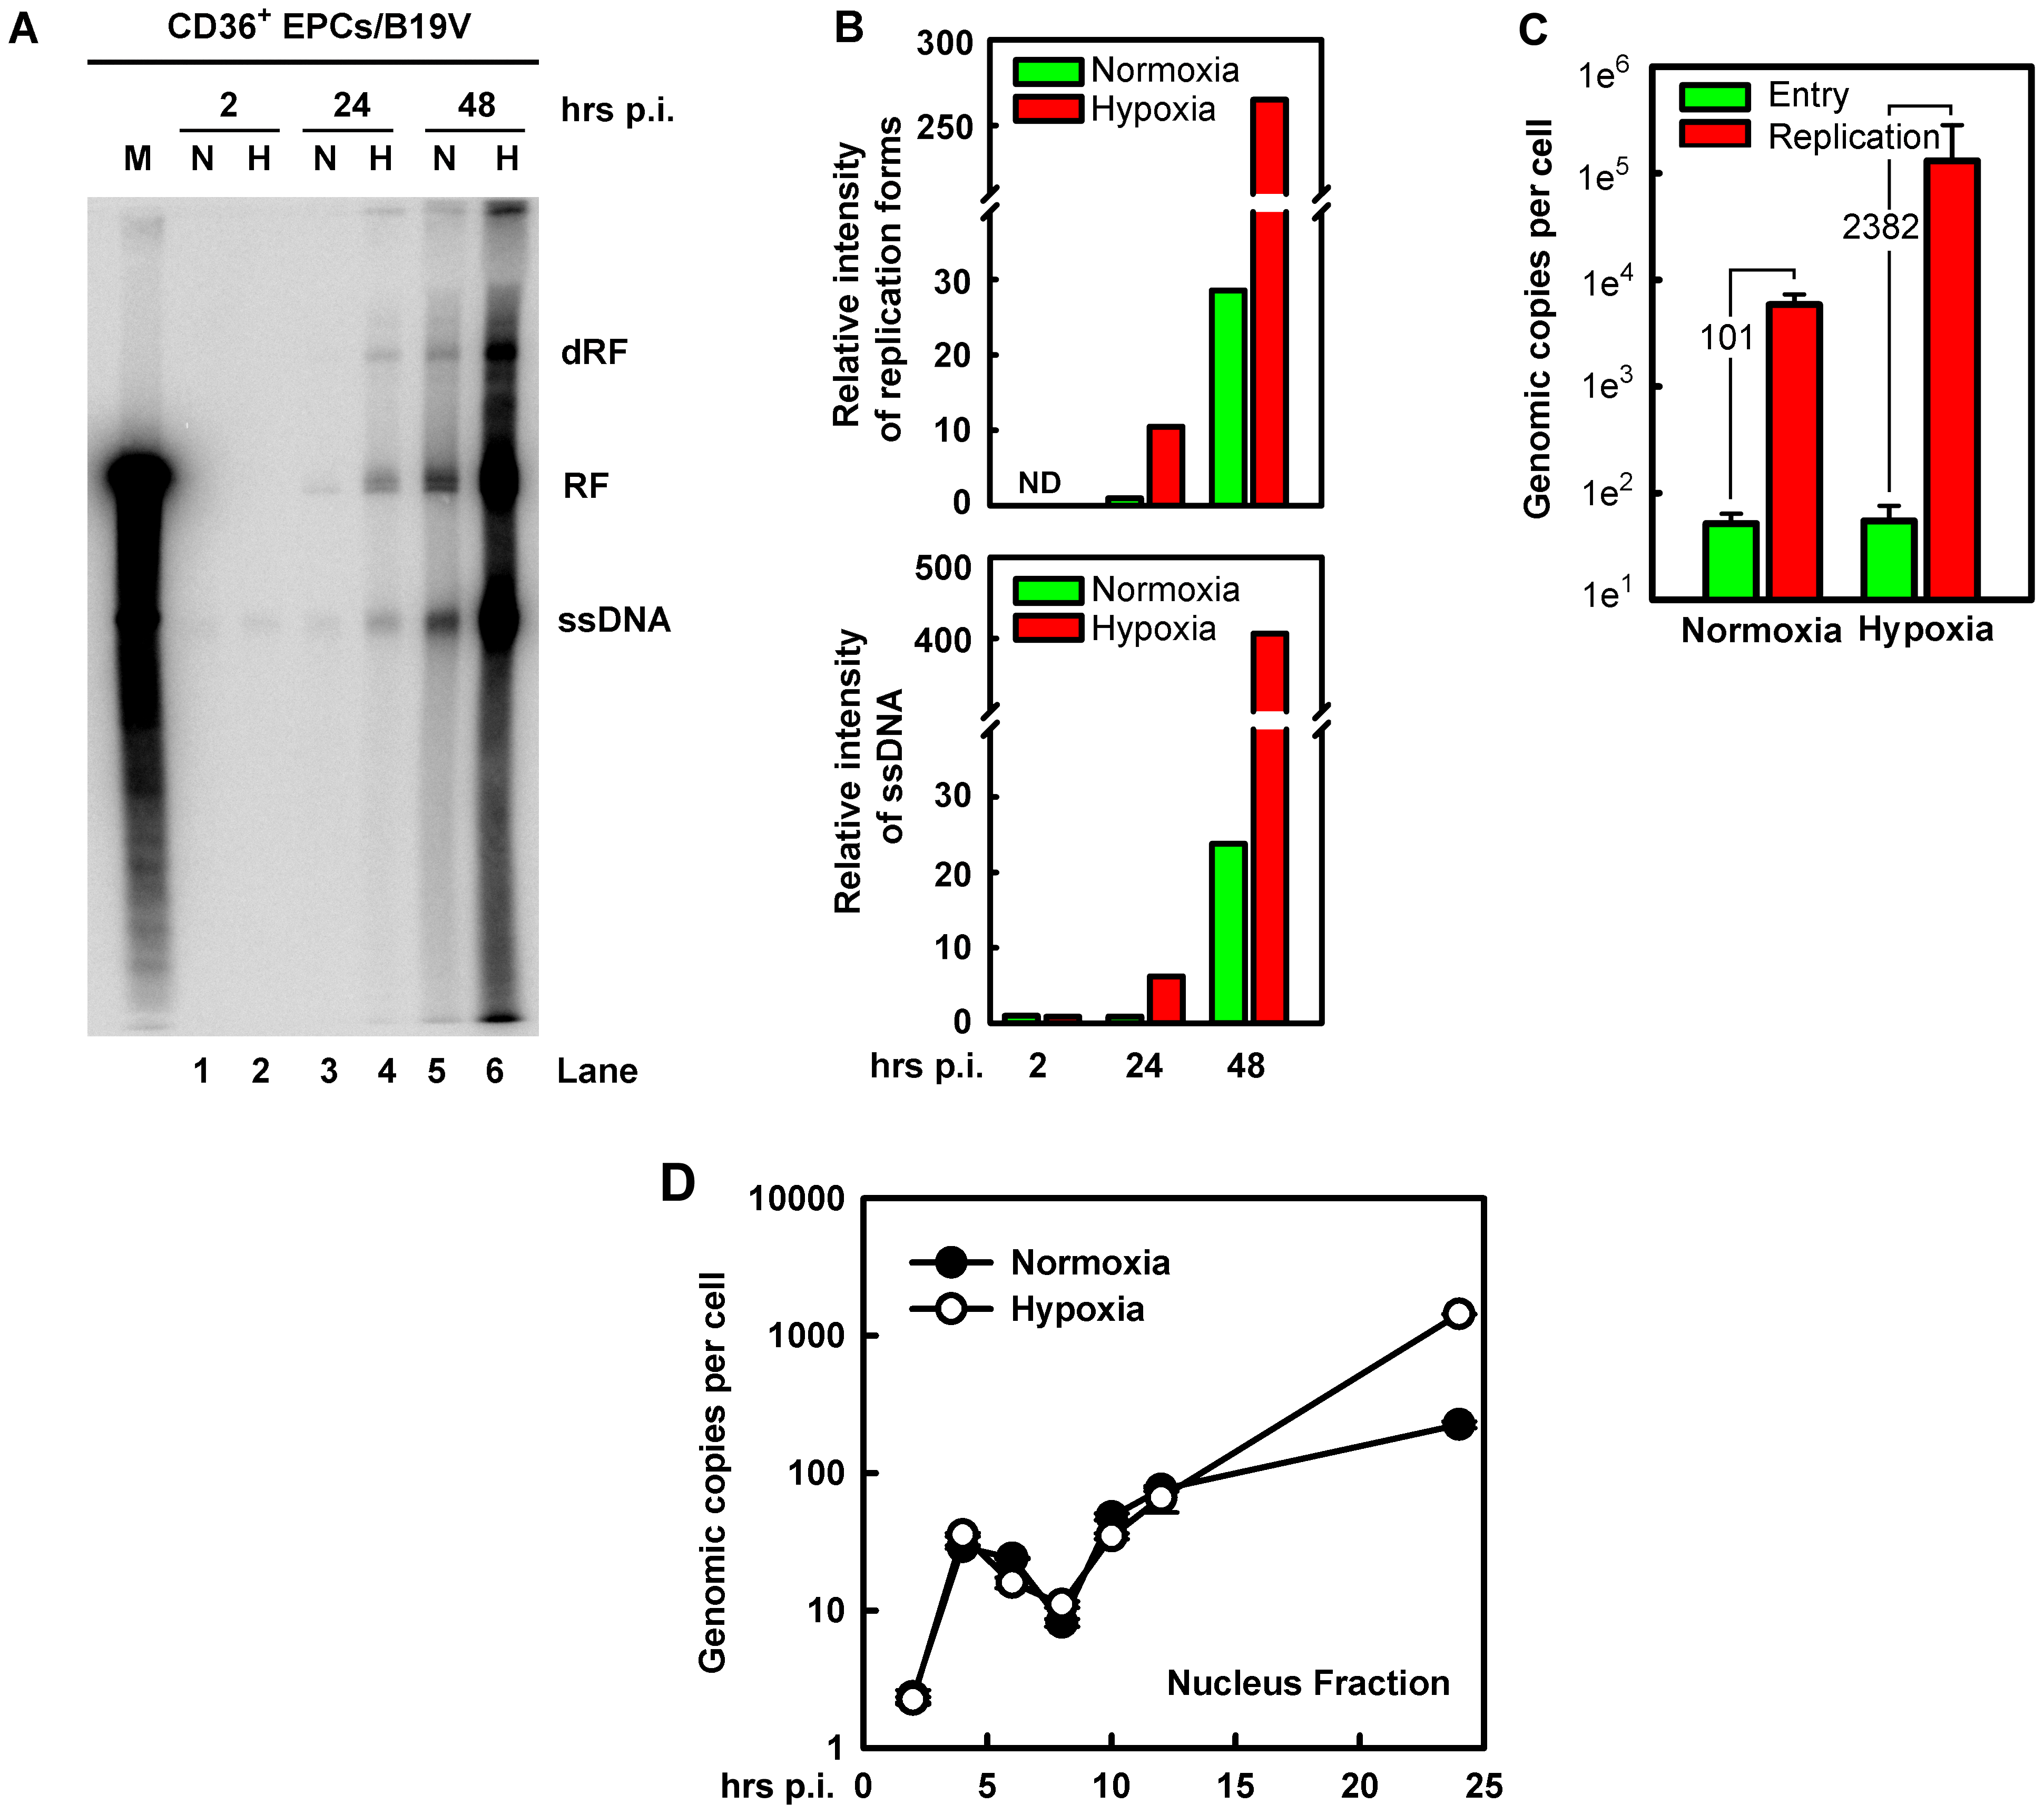 B19V DNA replication, virus entry and intracellular trafficking in CD36<sup>+</sup> EPCs under hypoxia <i>vs.</i> normoxia.